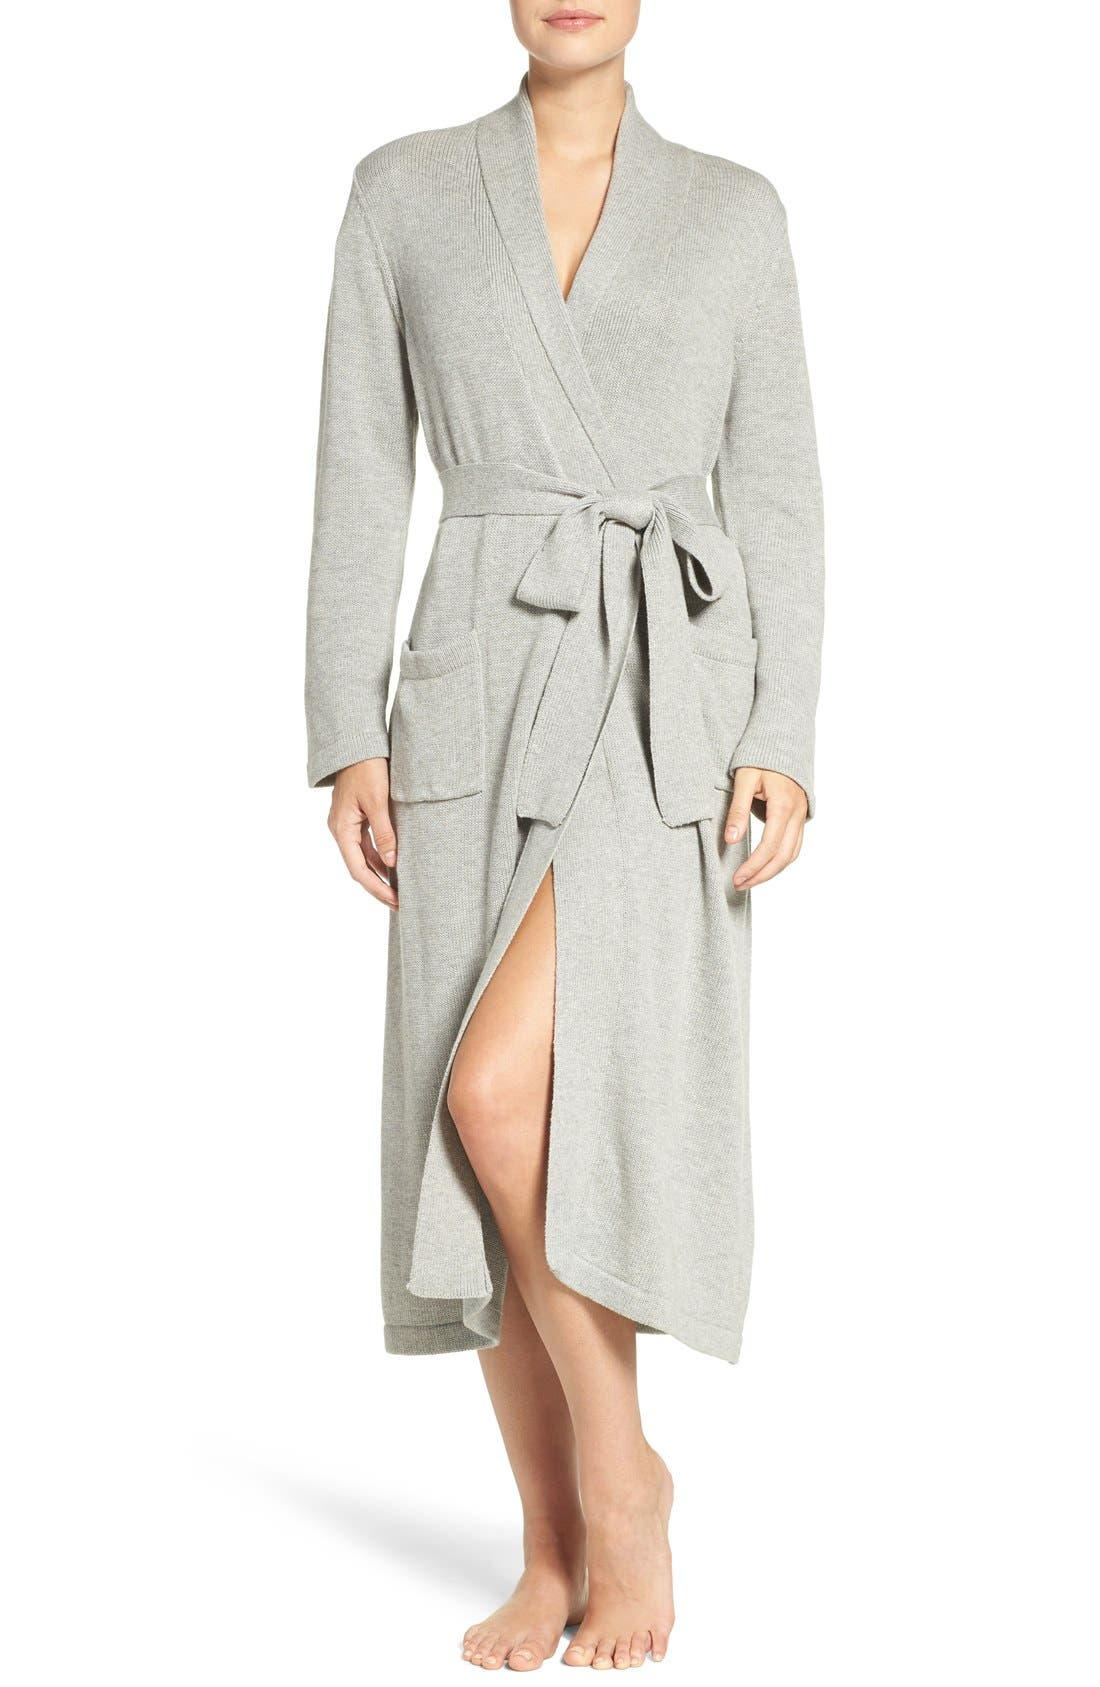 Main Image - Lauren Ralph Lauren 'Ballet' Knit Cotton Blend Robe